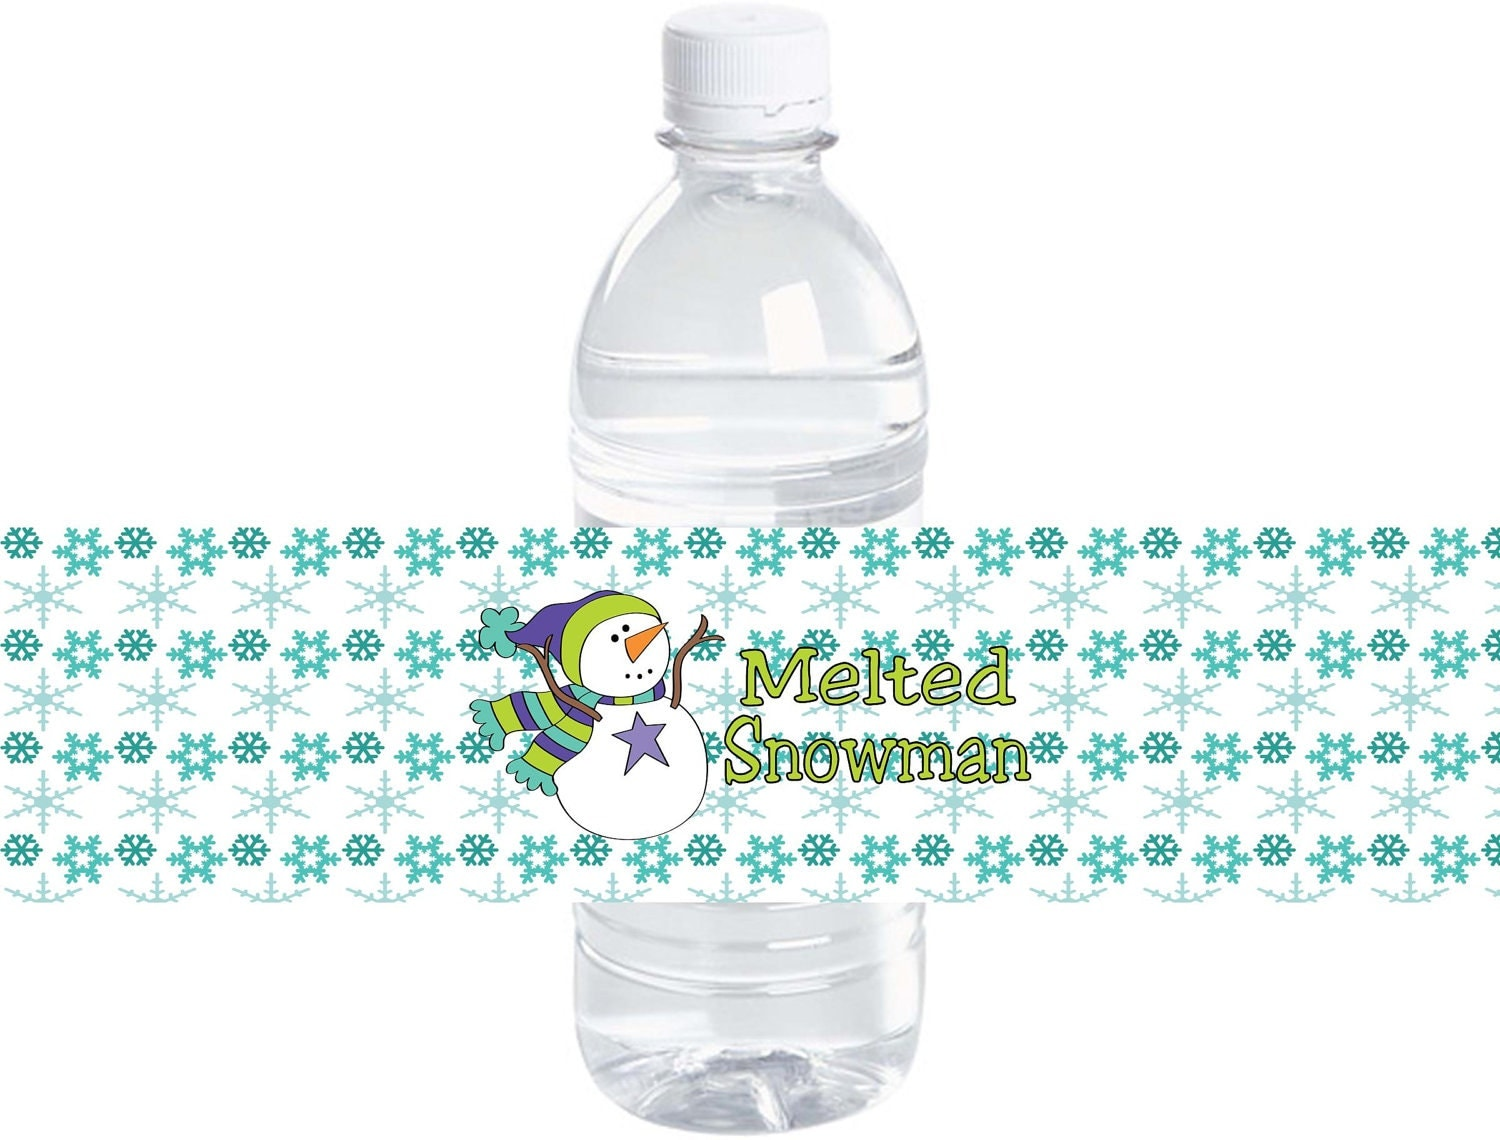 Items similar to melted snowman water bottle labels buy for Buy water bottle labels